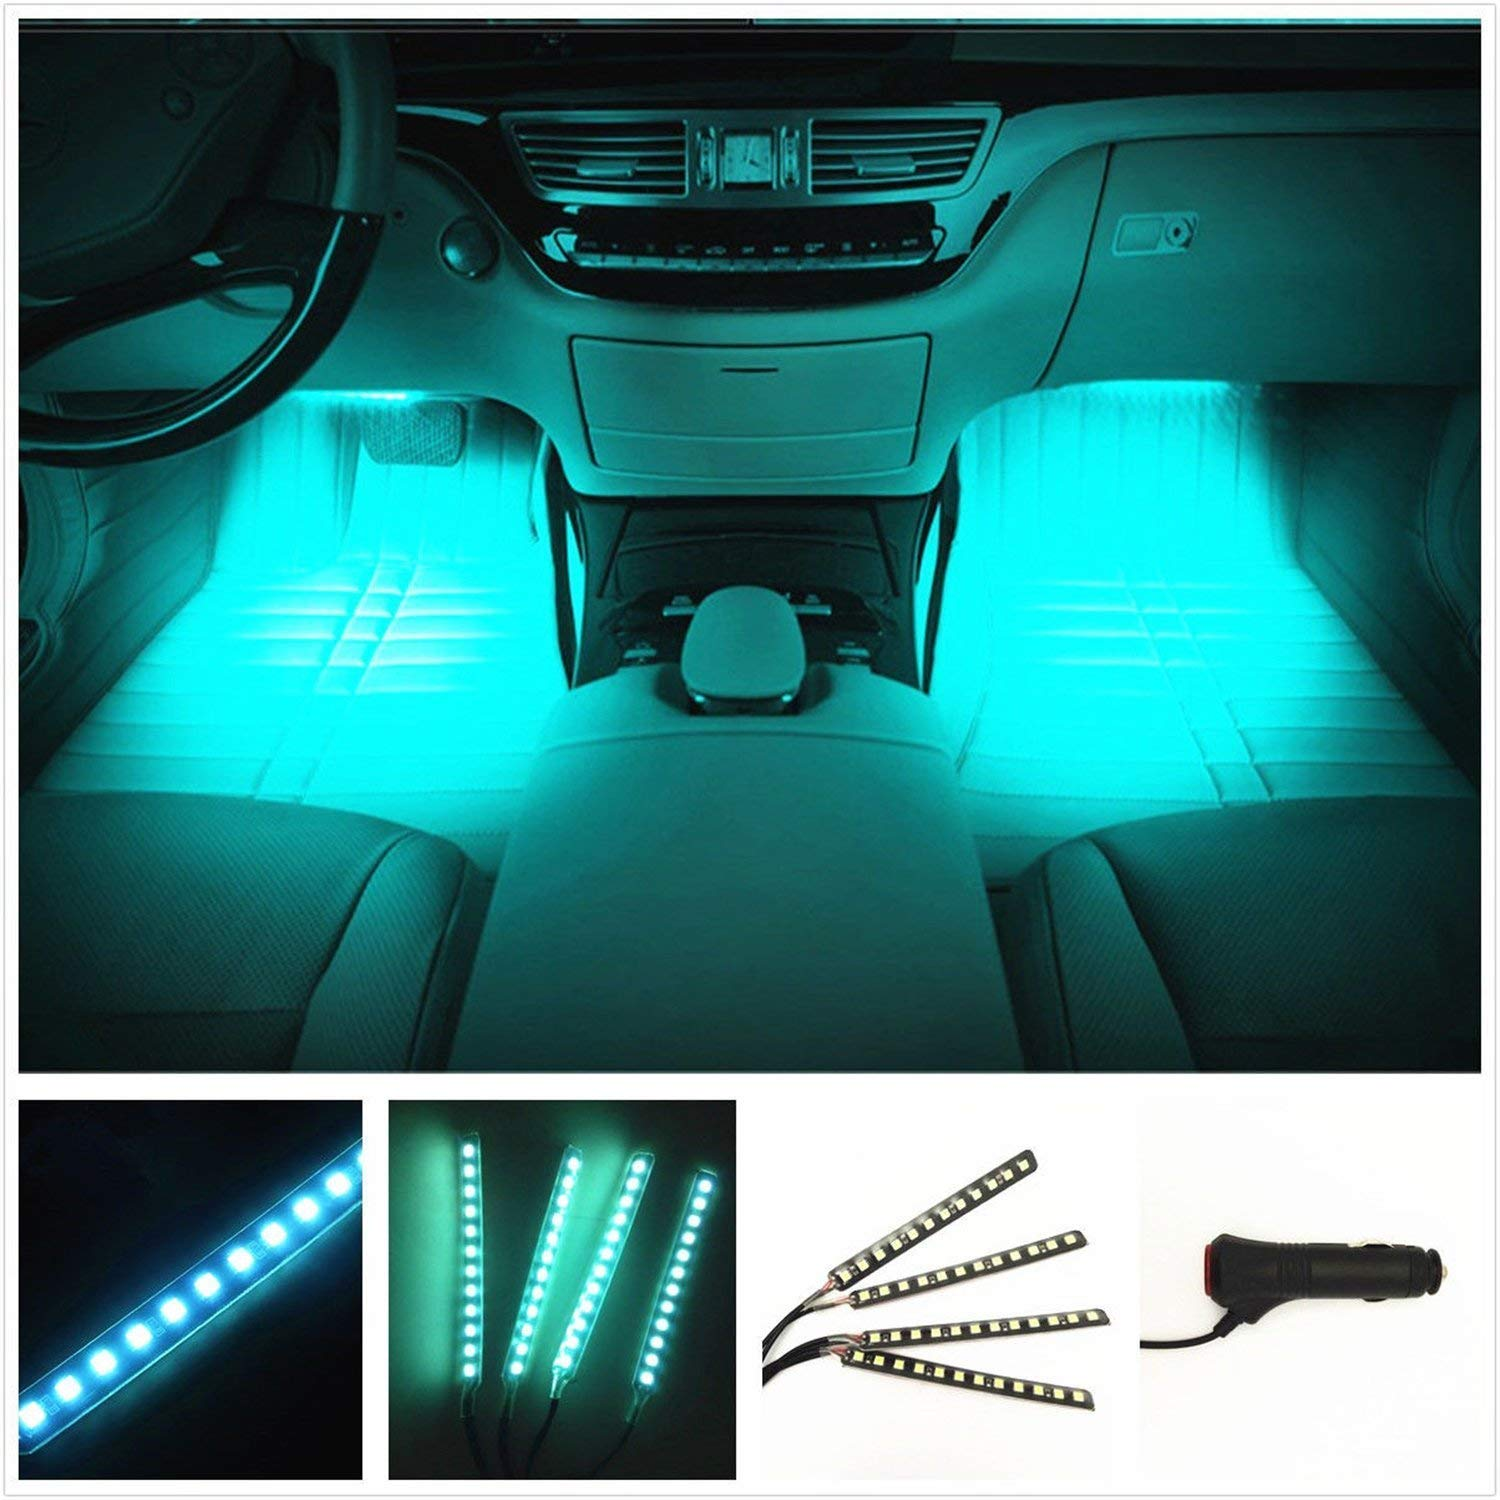 Car Interior Lights 4pcs 36 LED Car Floor Atmosphere Glow Neon lights Multi-Color Music Car LED Strip Lights Decorative Underdash Lighting Kit with Sound Active function Wireless Remote Control DC 12V Caca Auto 590EB5750BD0E6E4